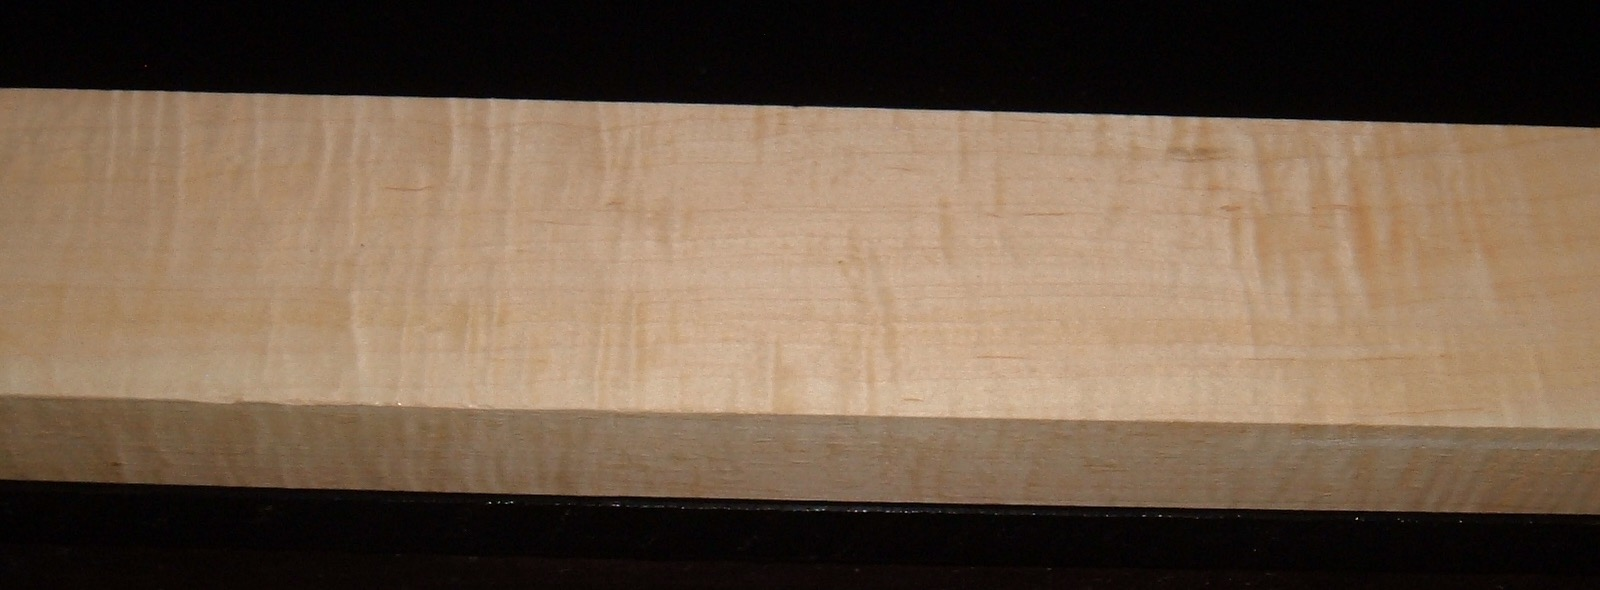 S-2180, +1-11/16x3-5/8x40, QuarterSawn Curly Tiger Maple